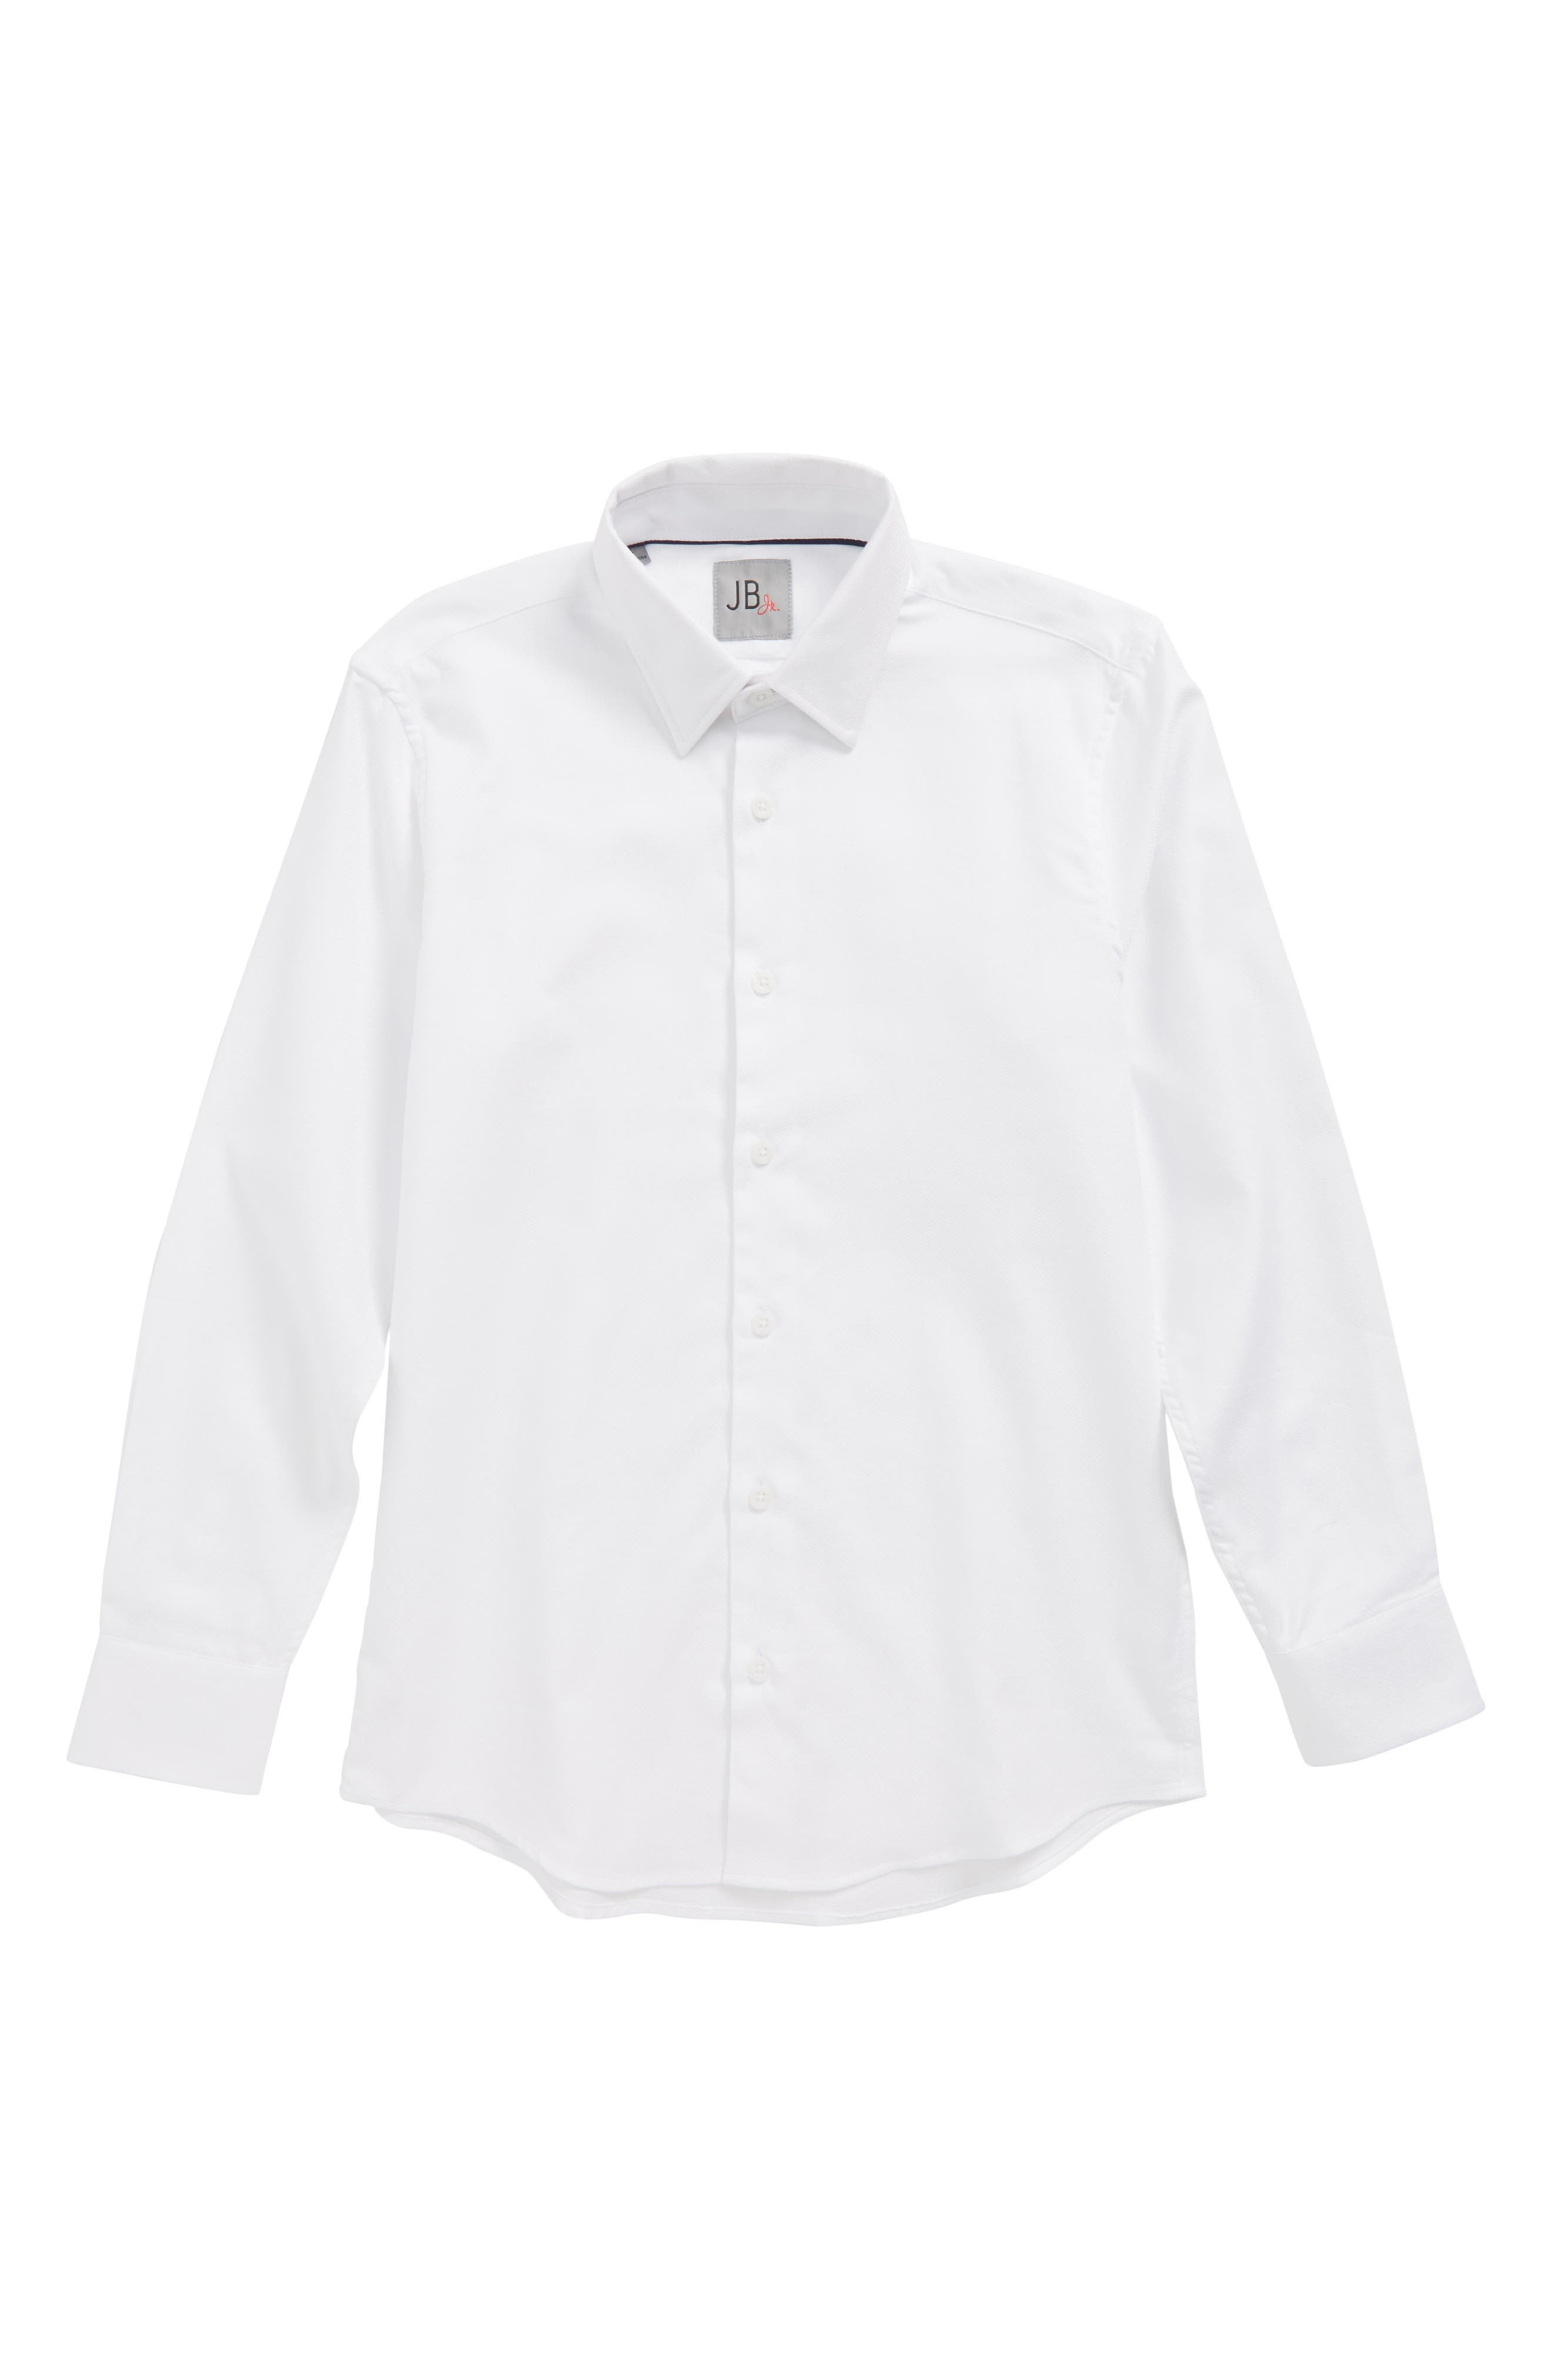 Main Image - JB Jr Textured Dress Shirt (Big Boys)